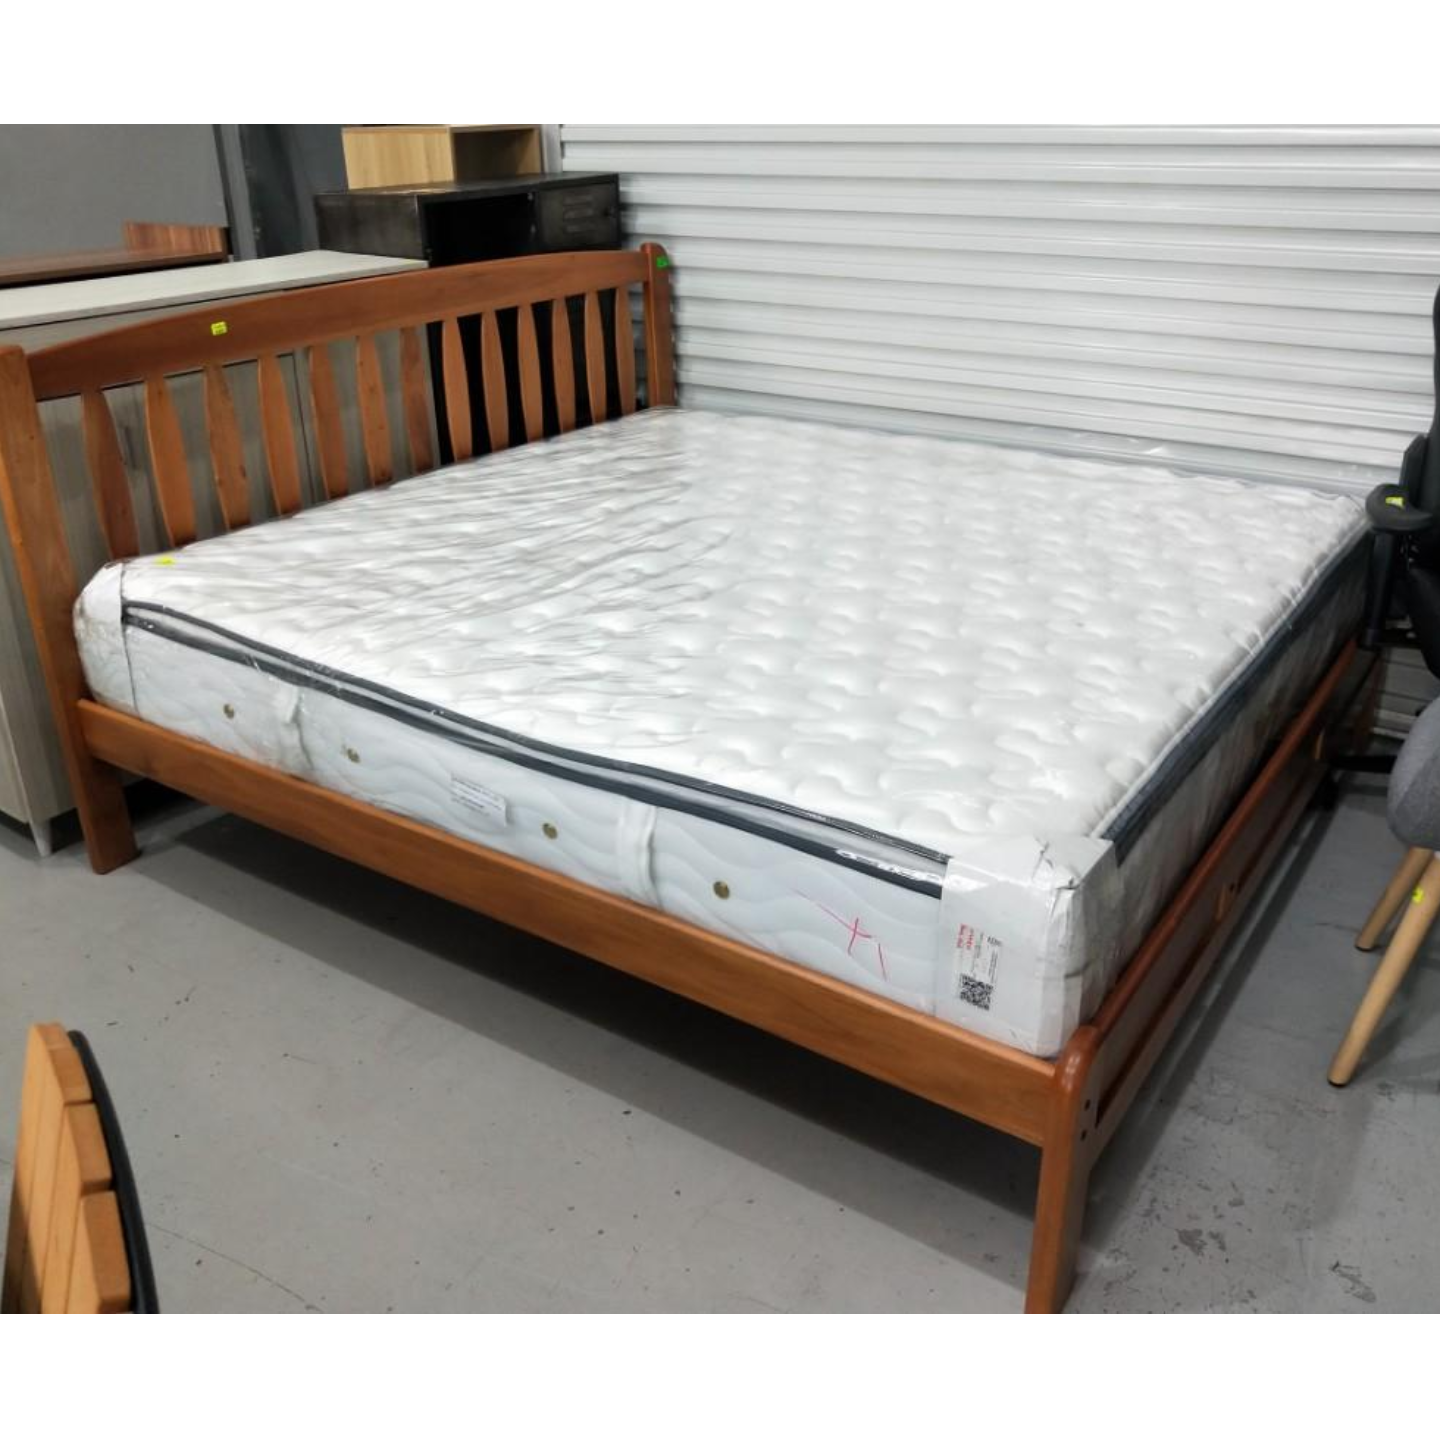 MOHAWK Wooden Bed Frame KING SIZE MATTRESS NOT INCL